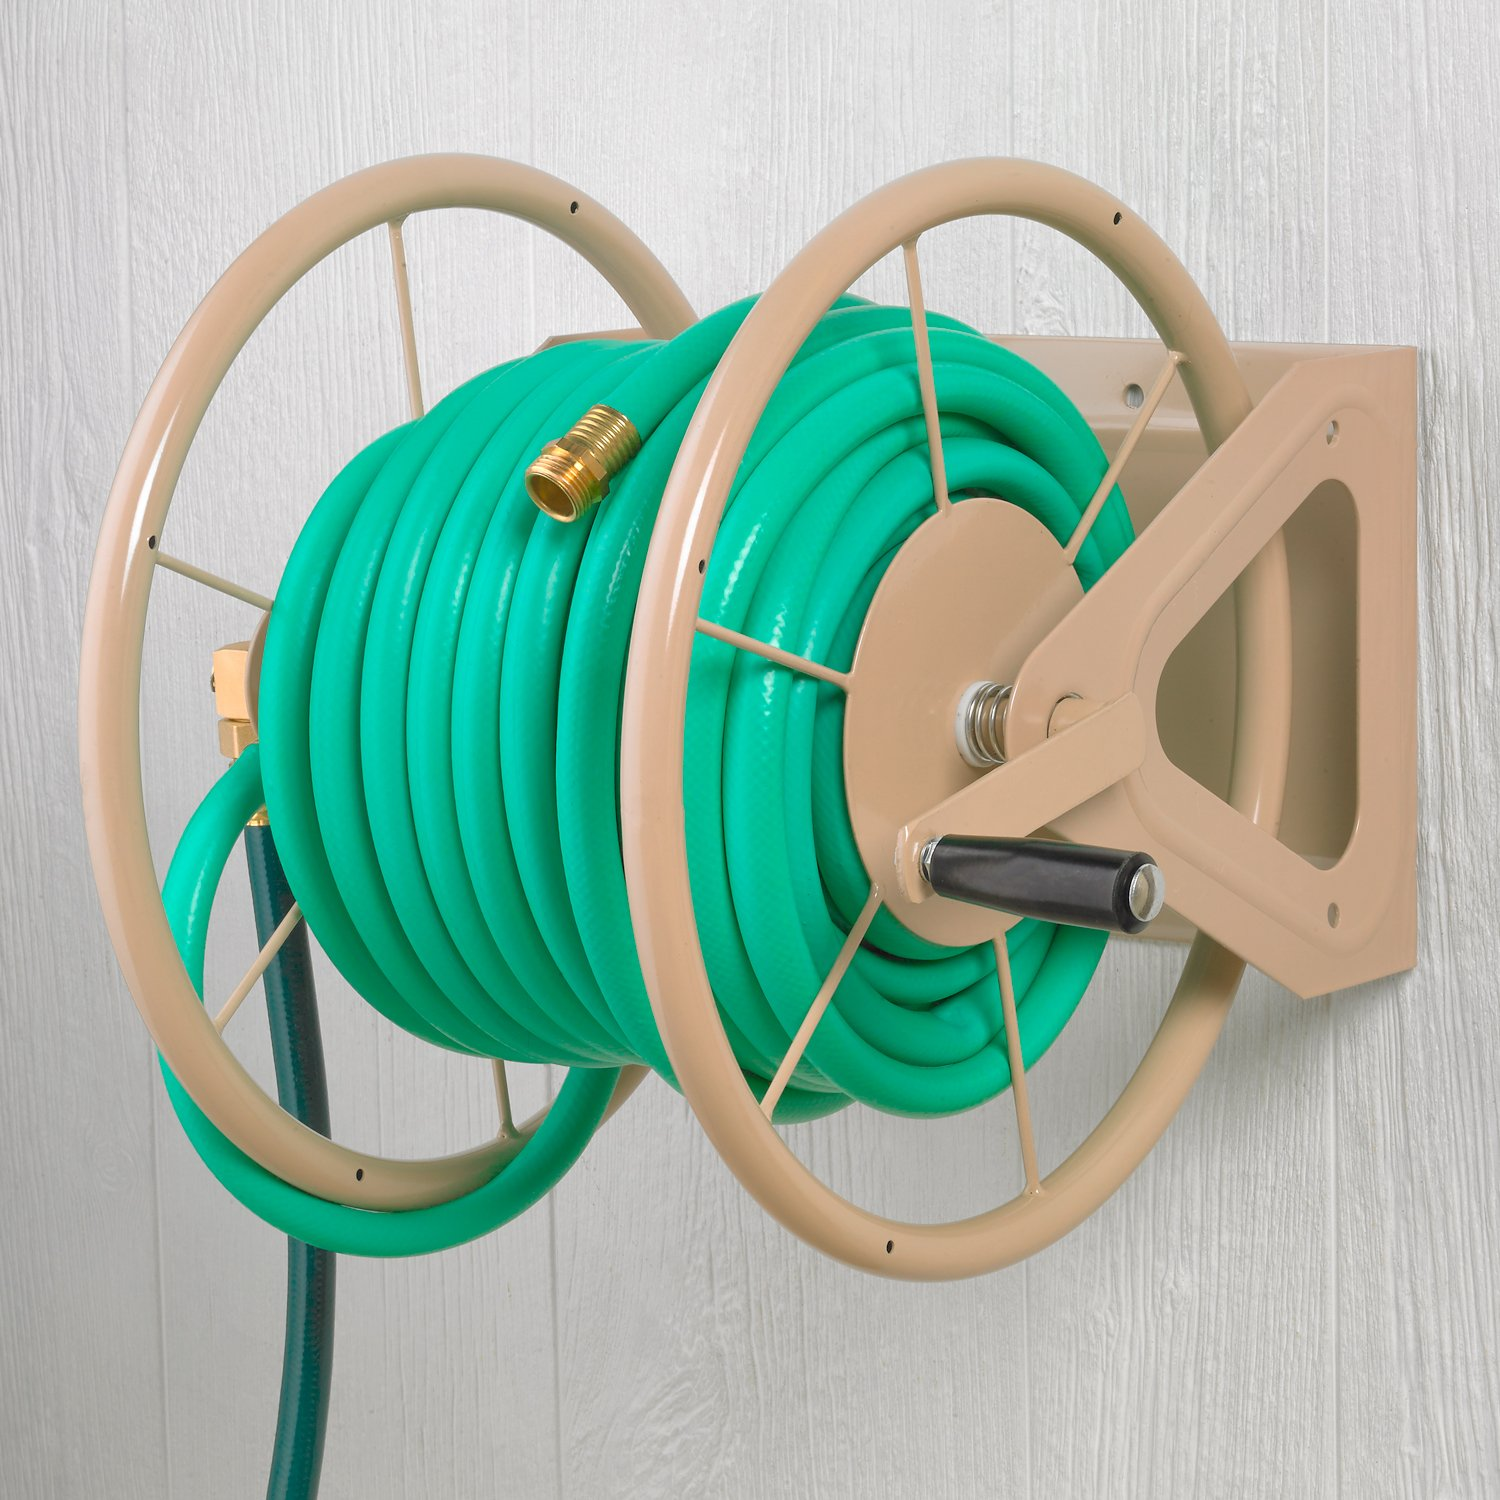 Amazon.com : Liberty Garden Products 703 1 Multi Purpose Steel Wall And  Floor Mount Garden Hose Reel, Holds 200 Feet Of 5/8 Inch Hose   Tan :  Patio, ...